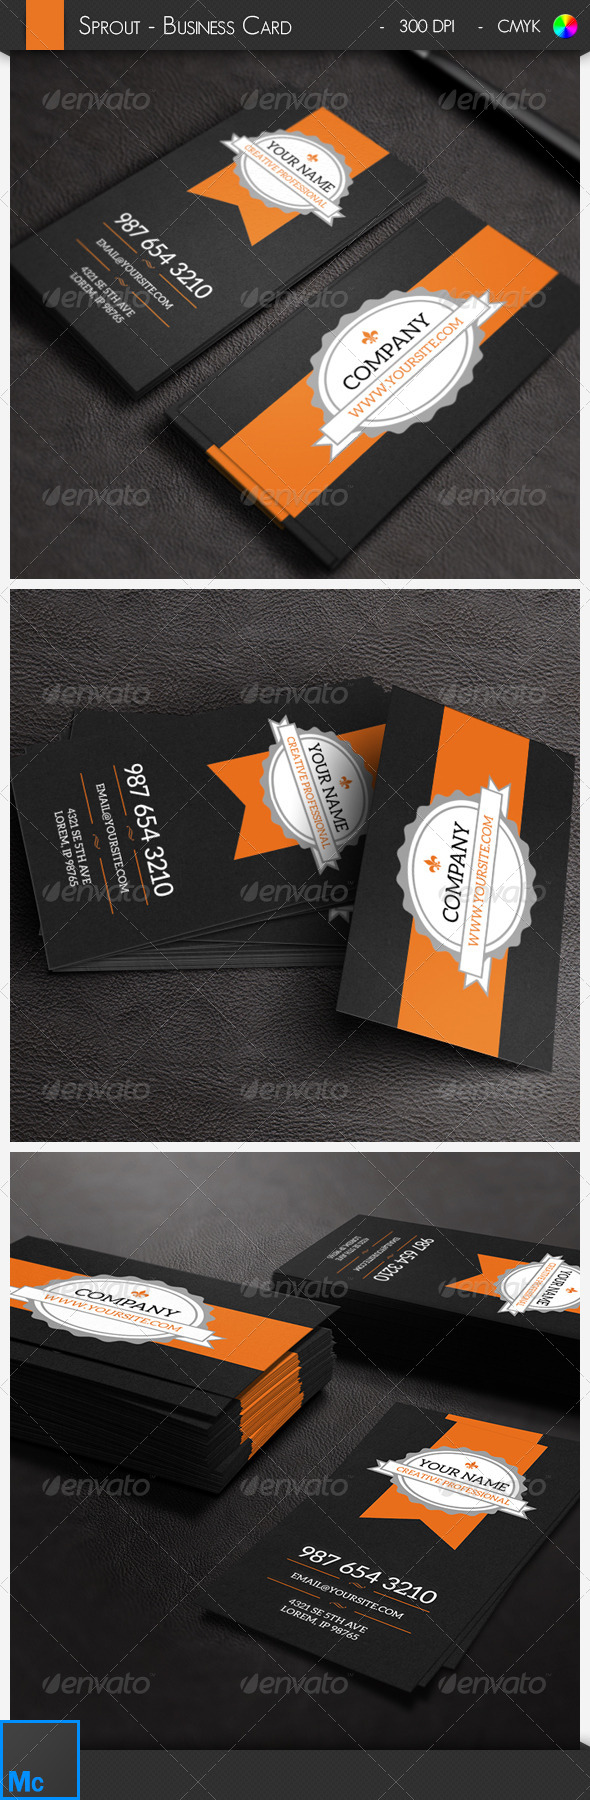 GraphicRiver Sprout Retro Business Card 6533268